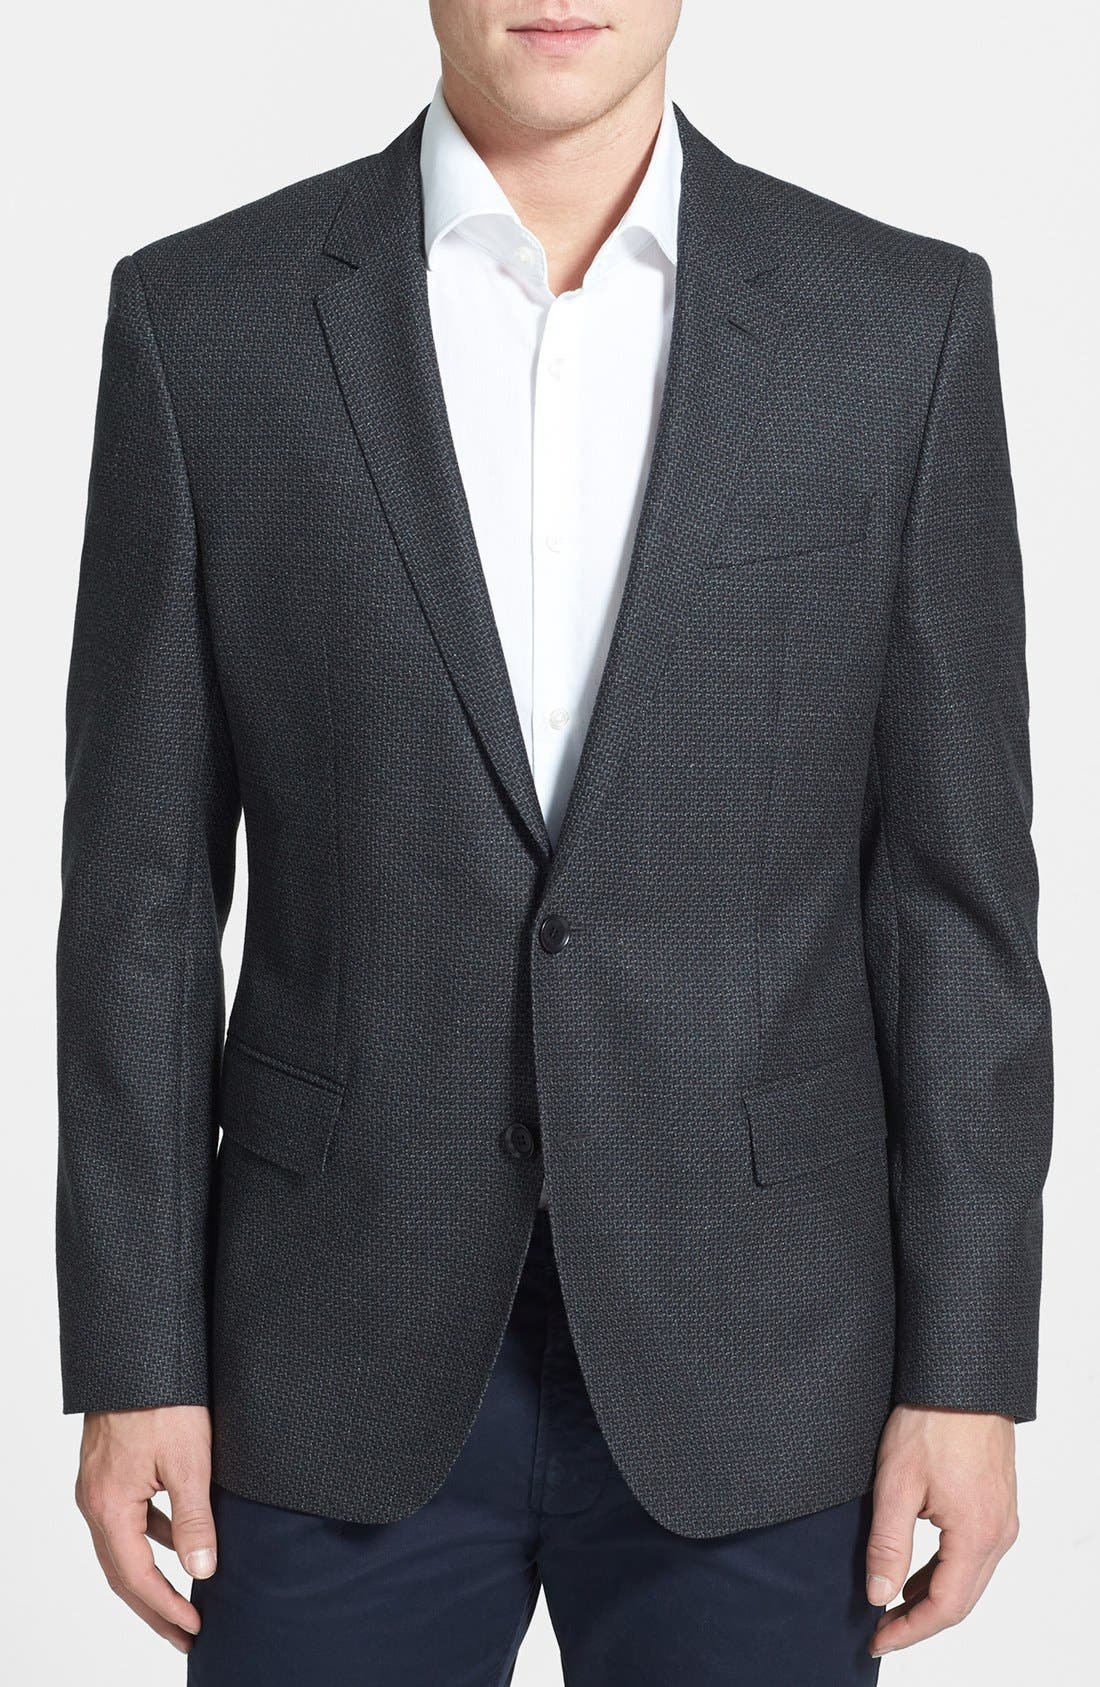 Alternate Image 1 Selected - BOSS HUGO BOSS 'Hutch' Trim Fit Wool Sportcoat